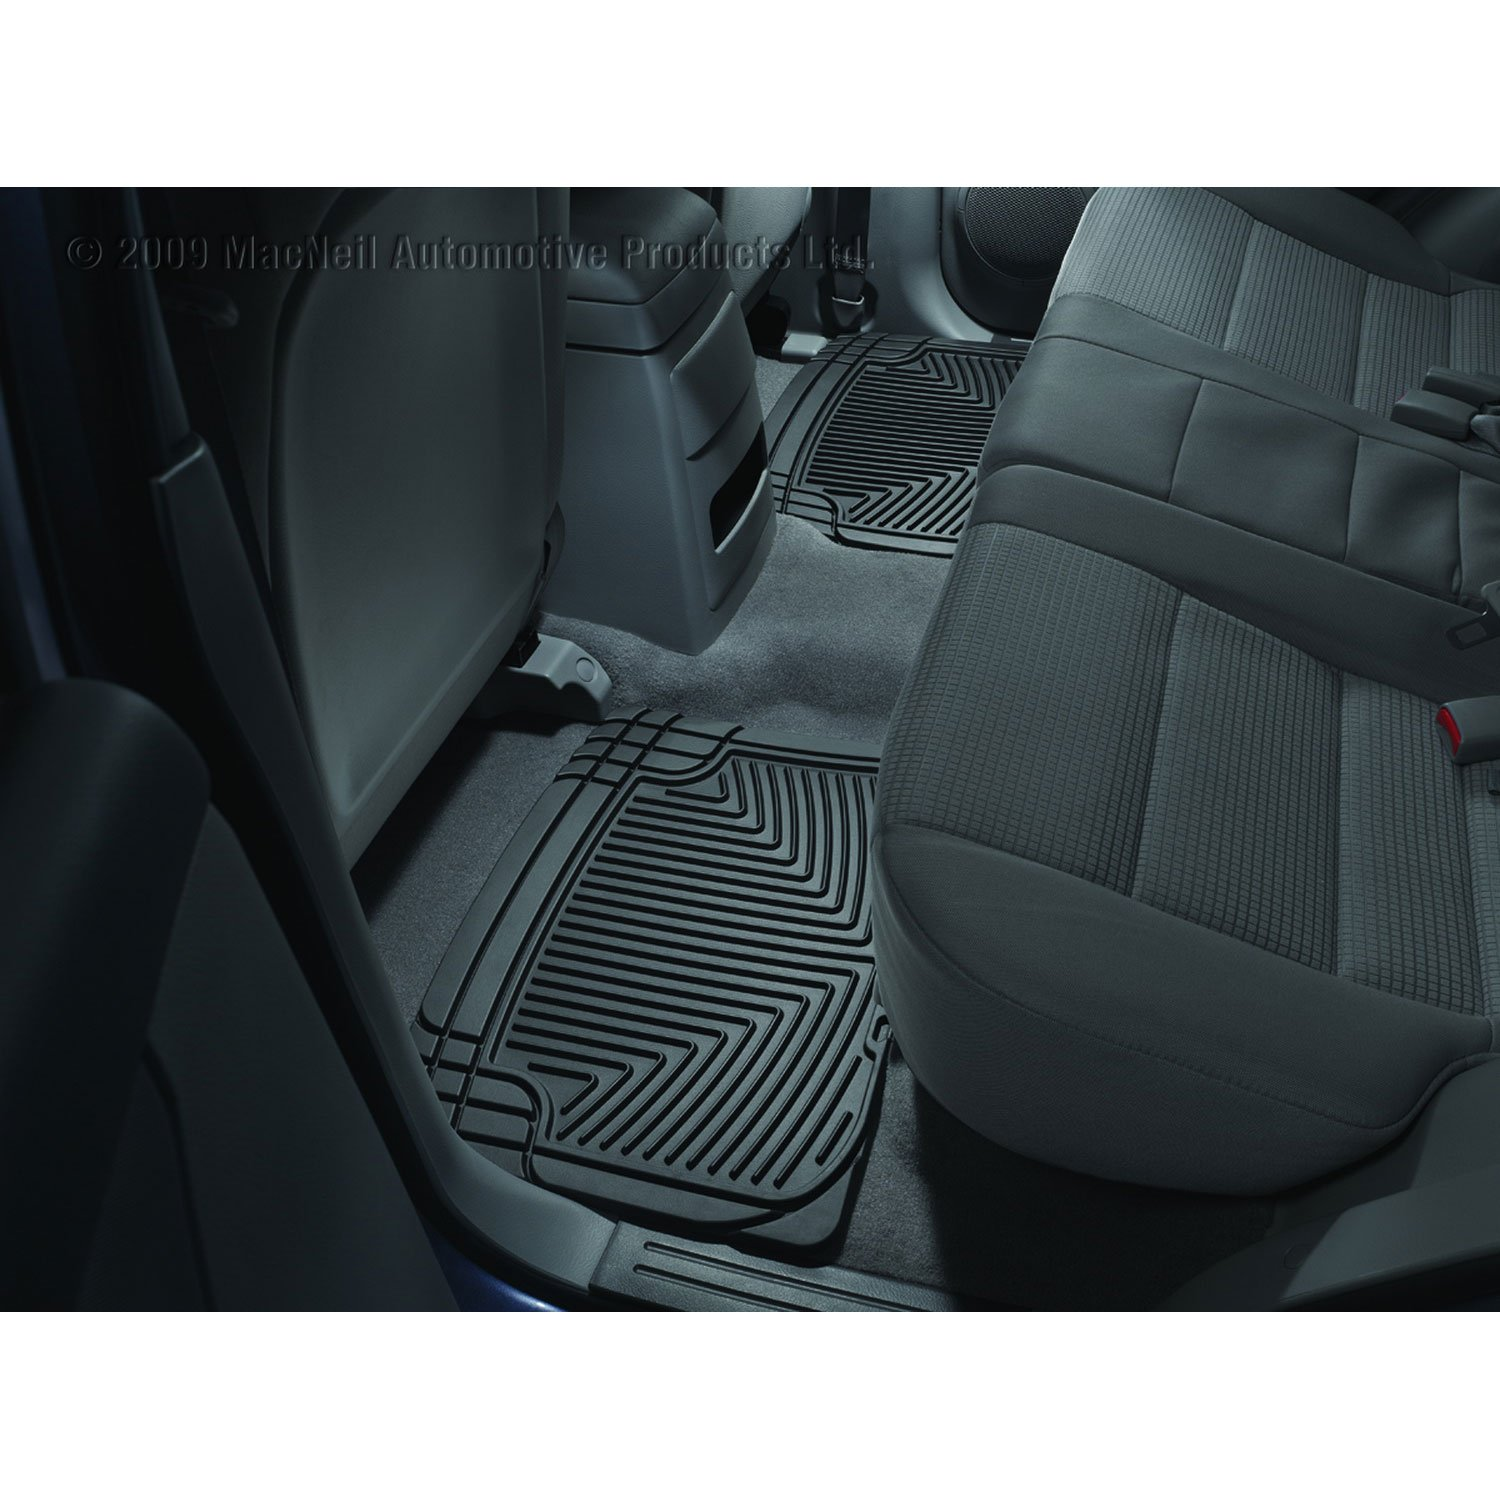 WeatherTechW20 All-Weather Trim to Fit Rear Rubber Mats (Black)